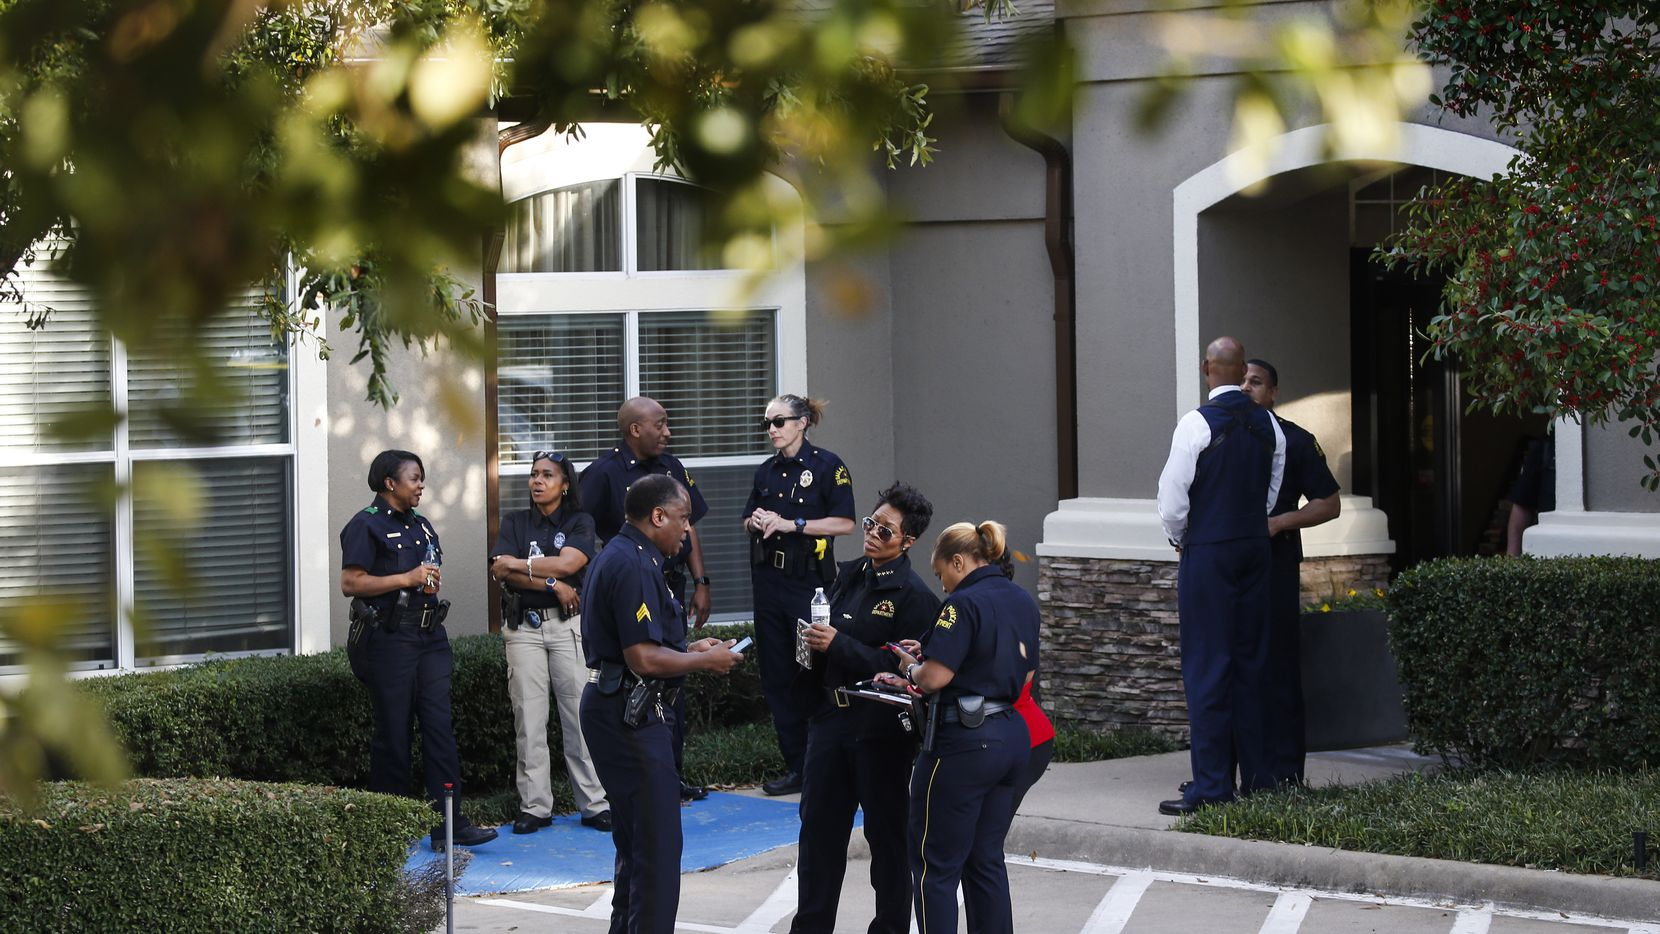 Dallas police investigate where two children and two adults were found shot to death at a Staybridge Suites near Keller Springs Road and the Dallas North Tollway on Tuesday, March 10, 2020 in Dallas. (Ryan Michalesko/The Dallas Morning News)